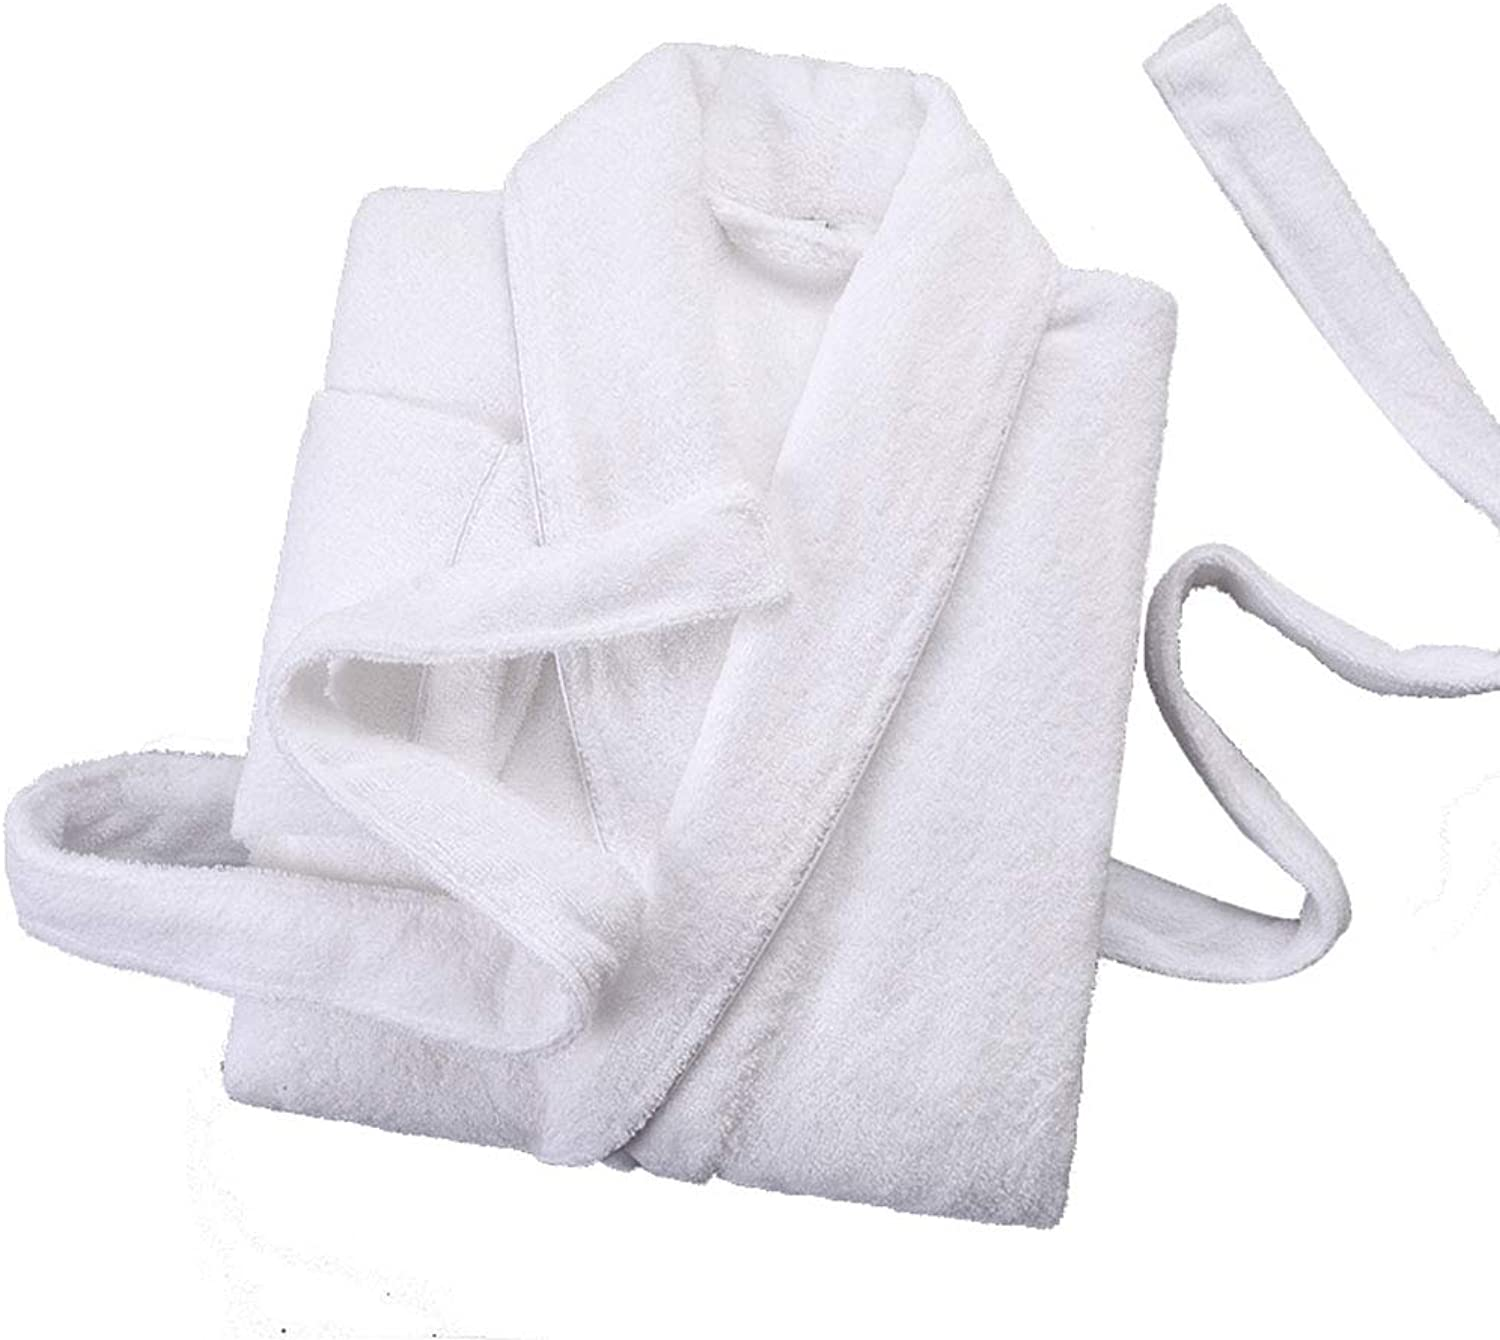 Bathrobe, Womens Mens QuickDrying Towelling Shower Robe, Cotton Lapels Dressing Gowns, Hotel Sauna Coat